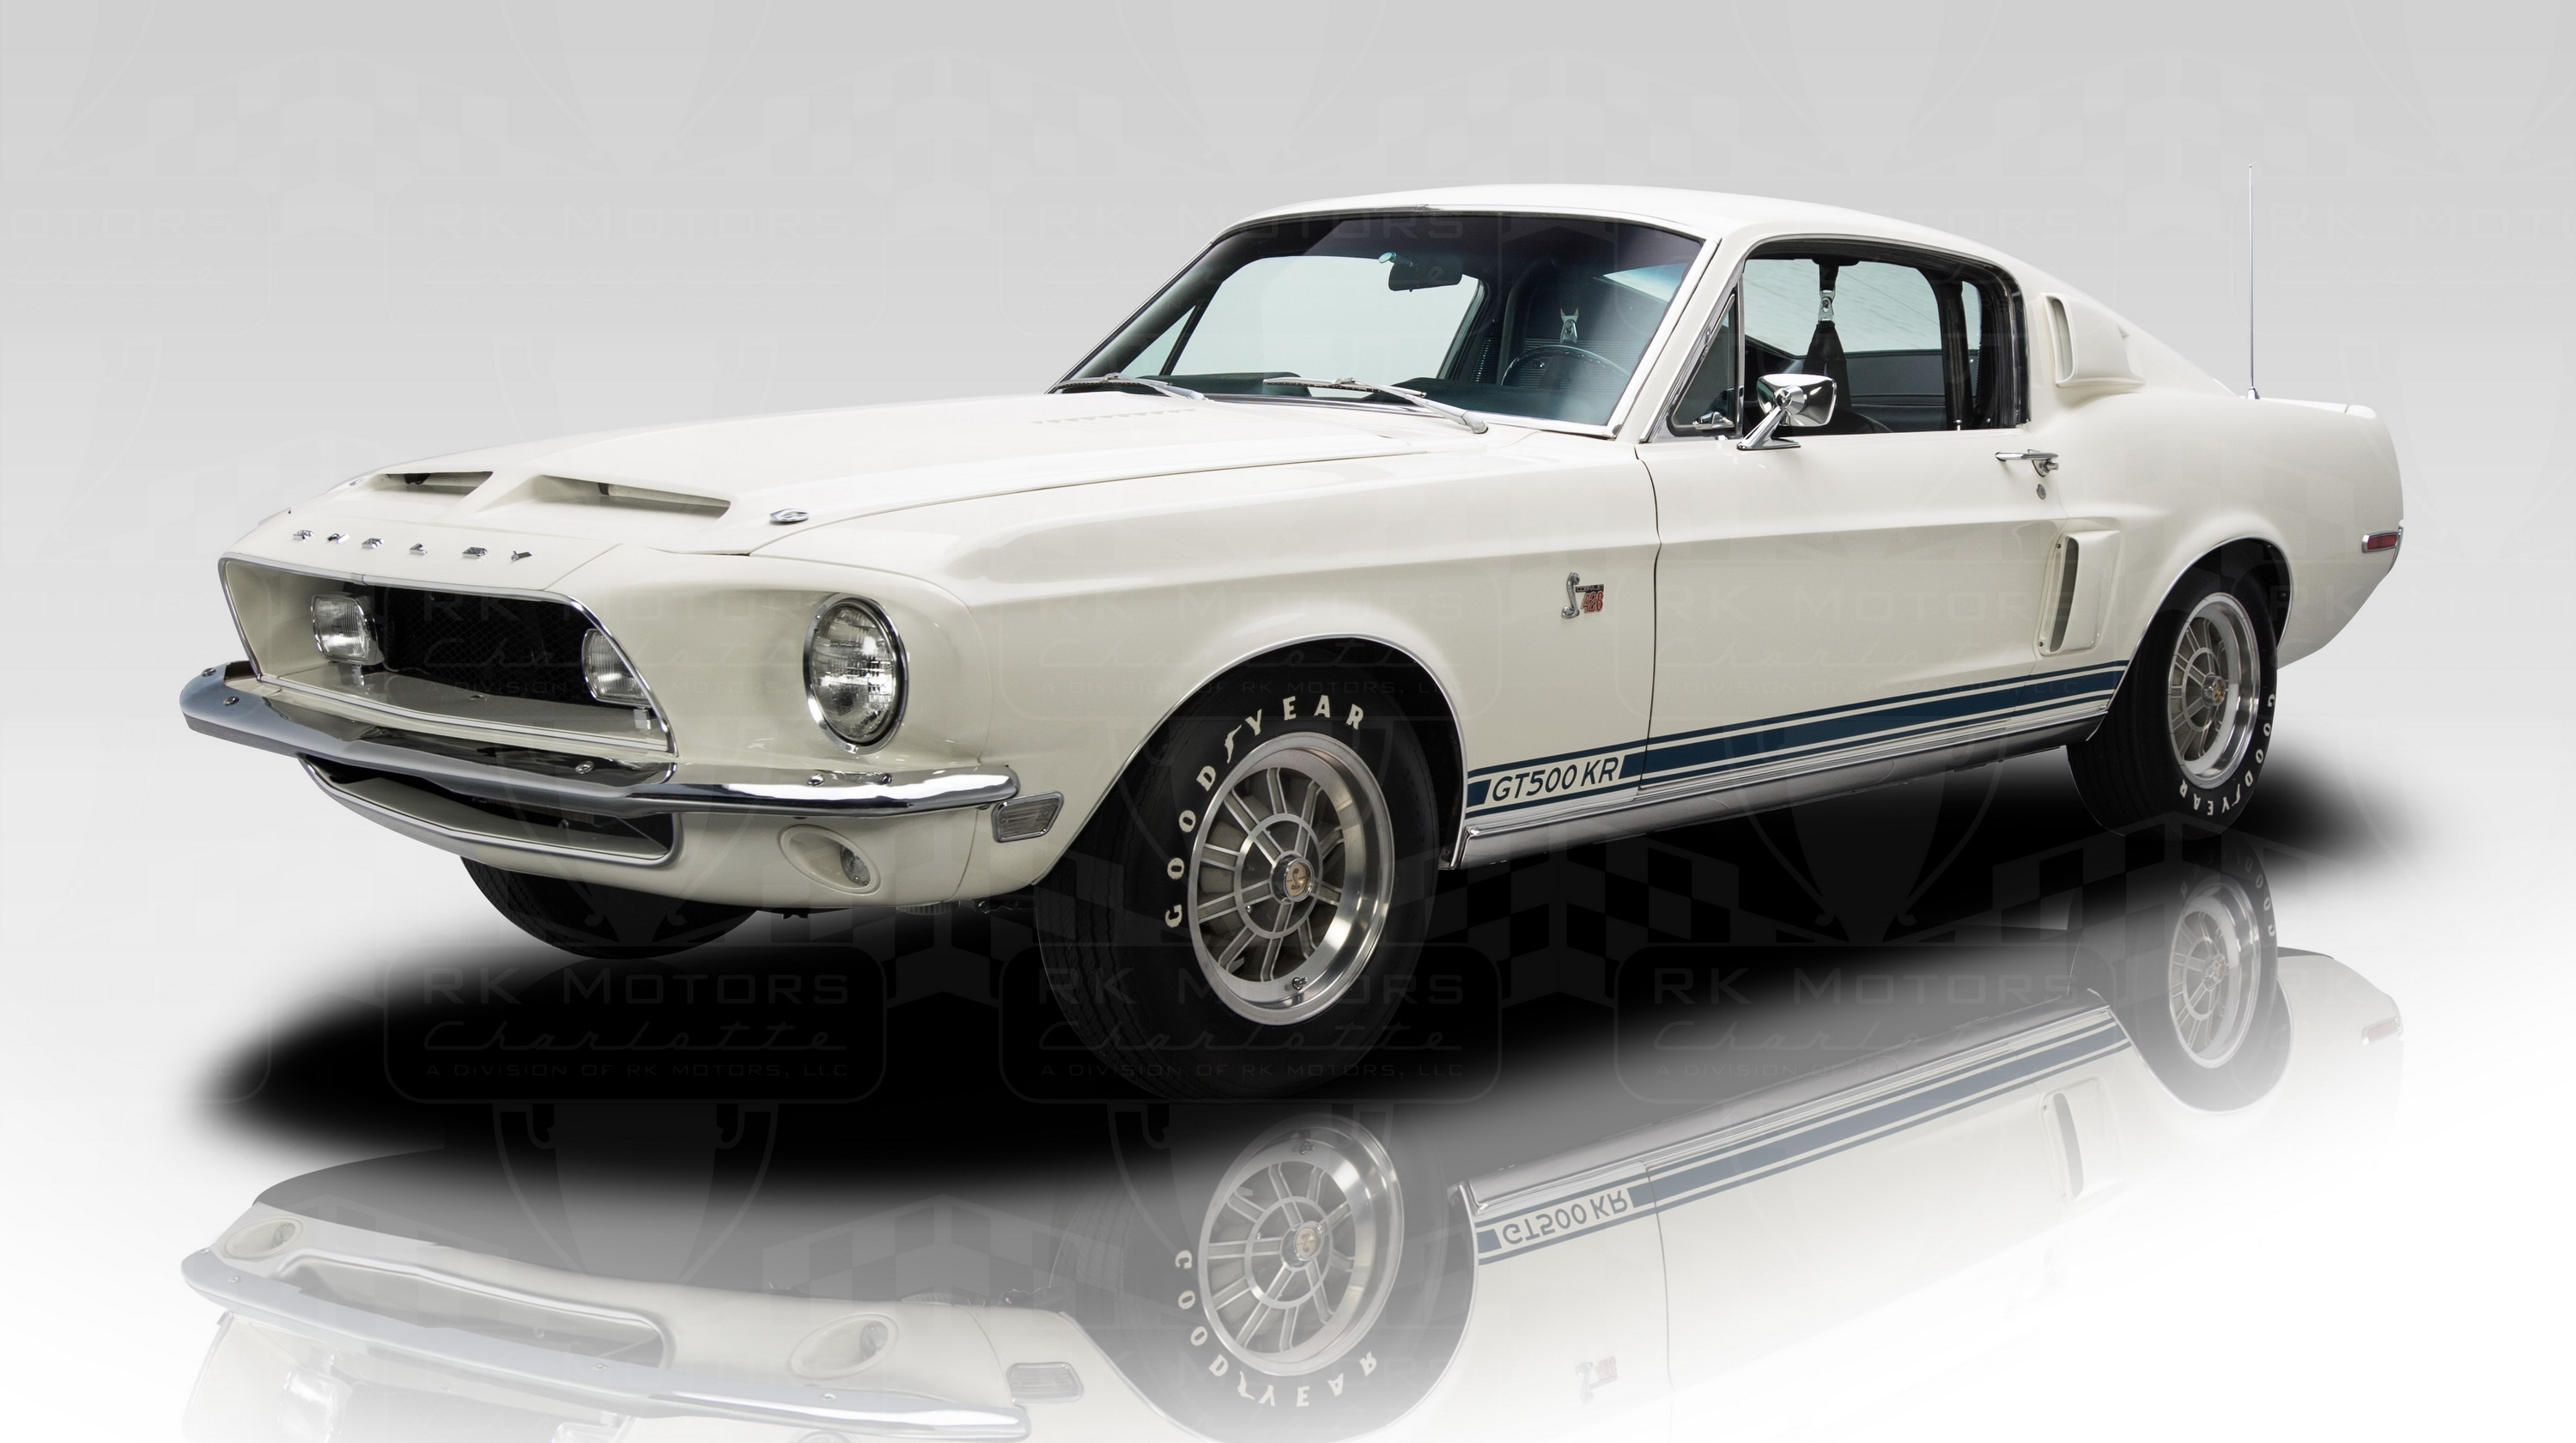 1968 shelby mustang gt500 kr top speed